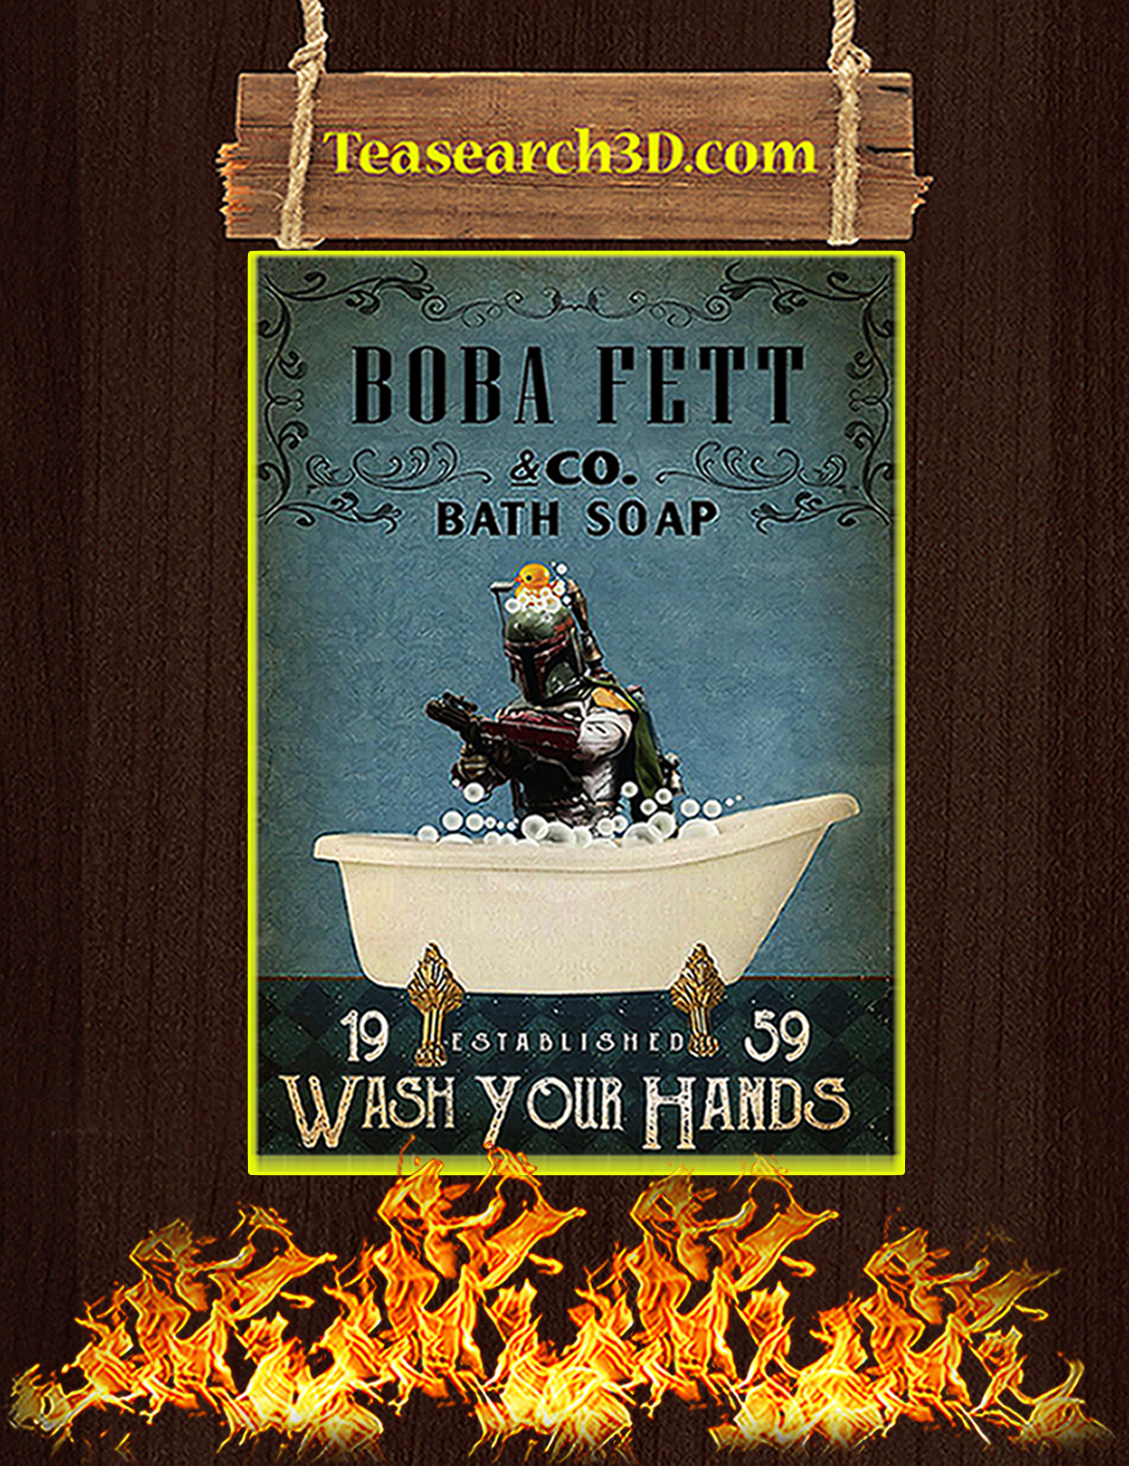 Boba bett co bath soap wash your hands poster A3